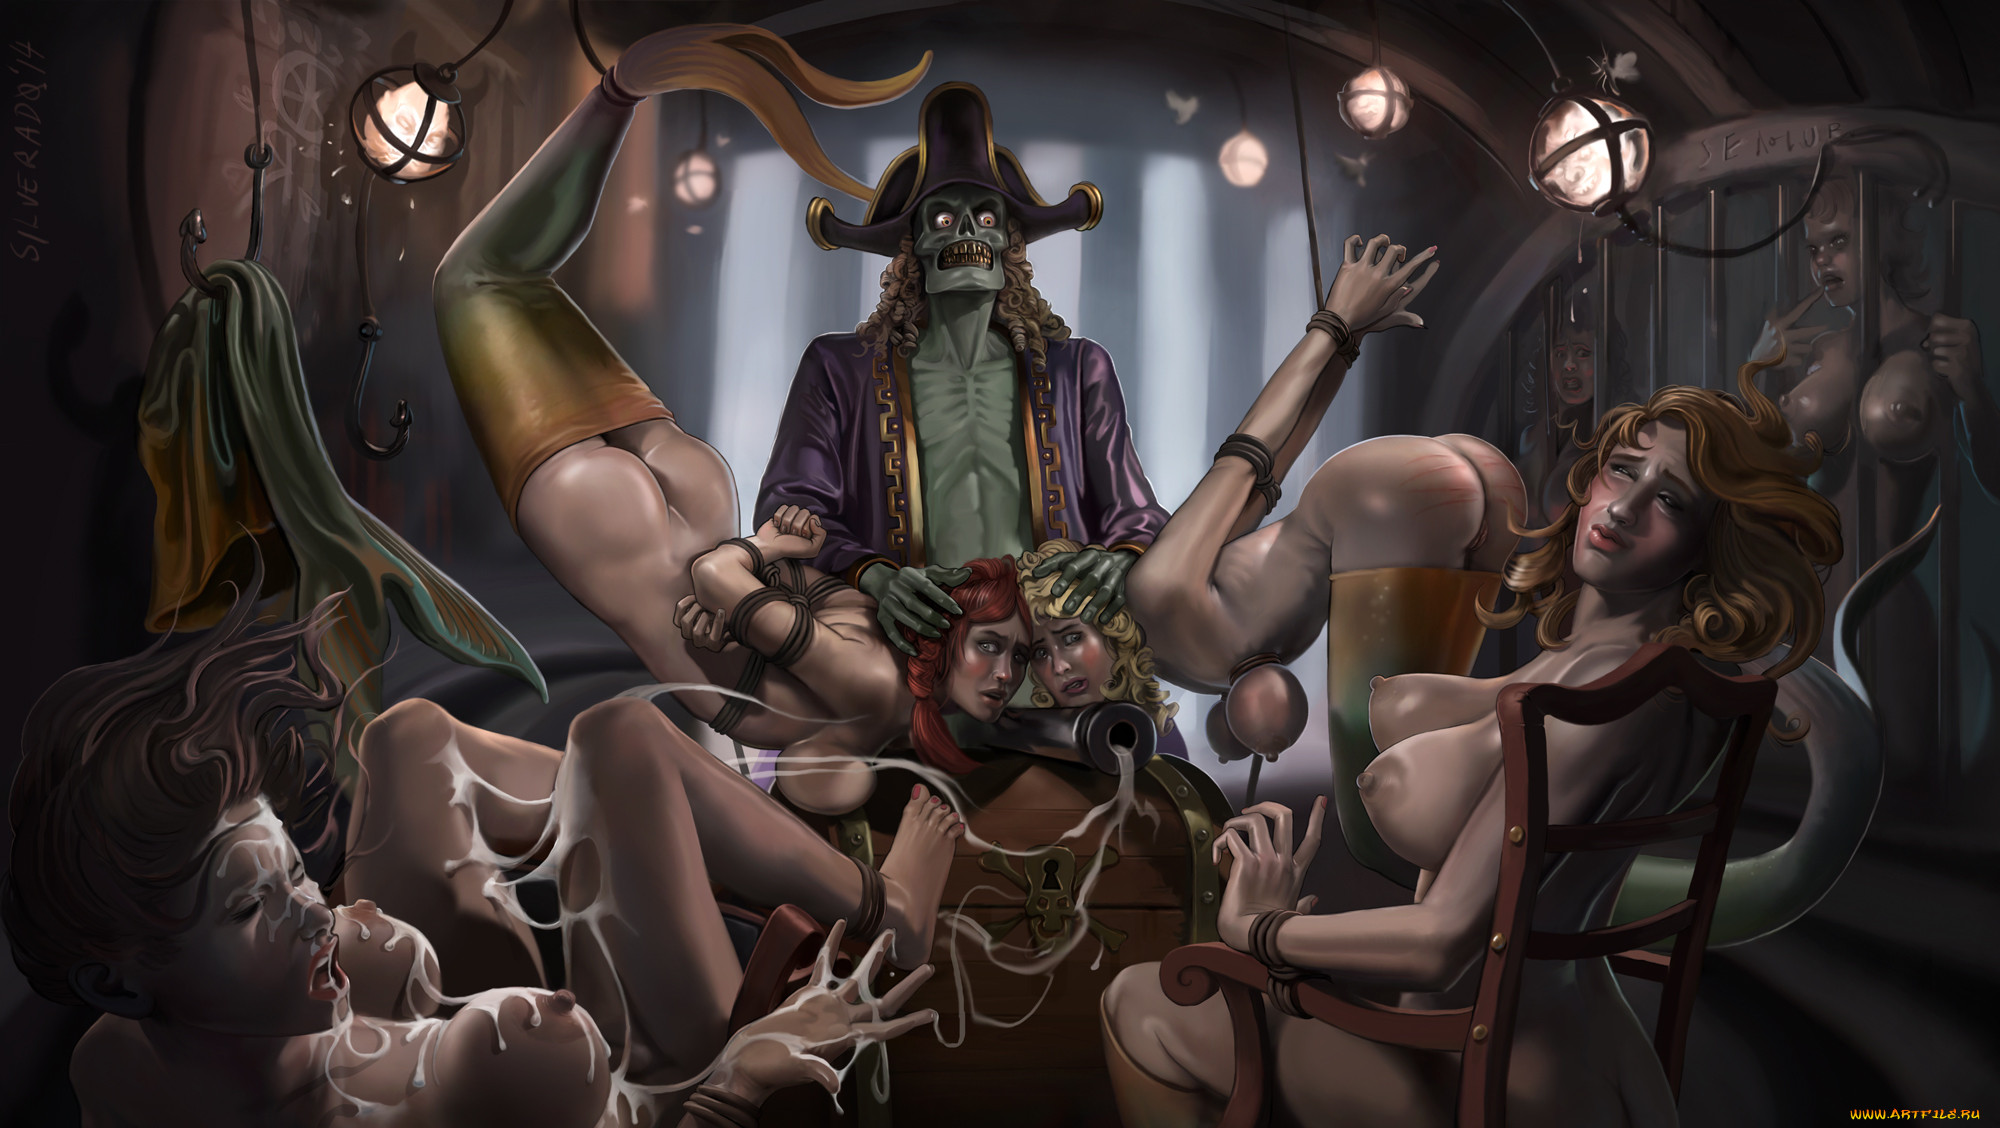 pirate fantasy sex porn